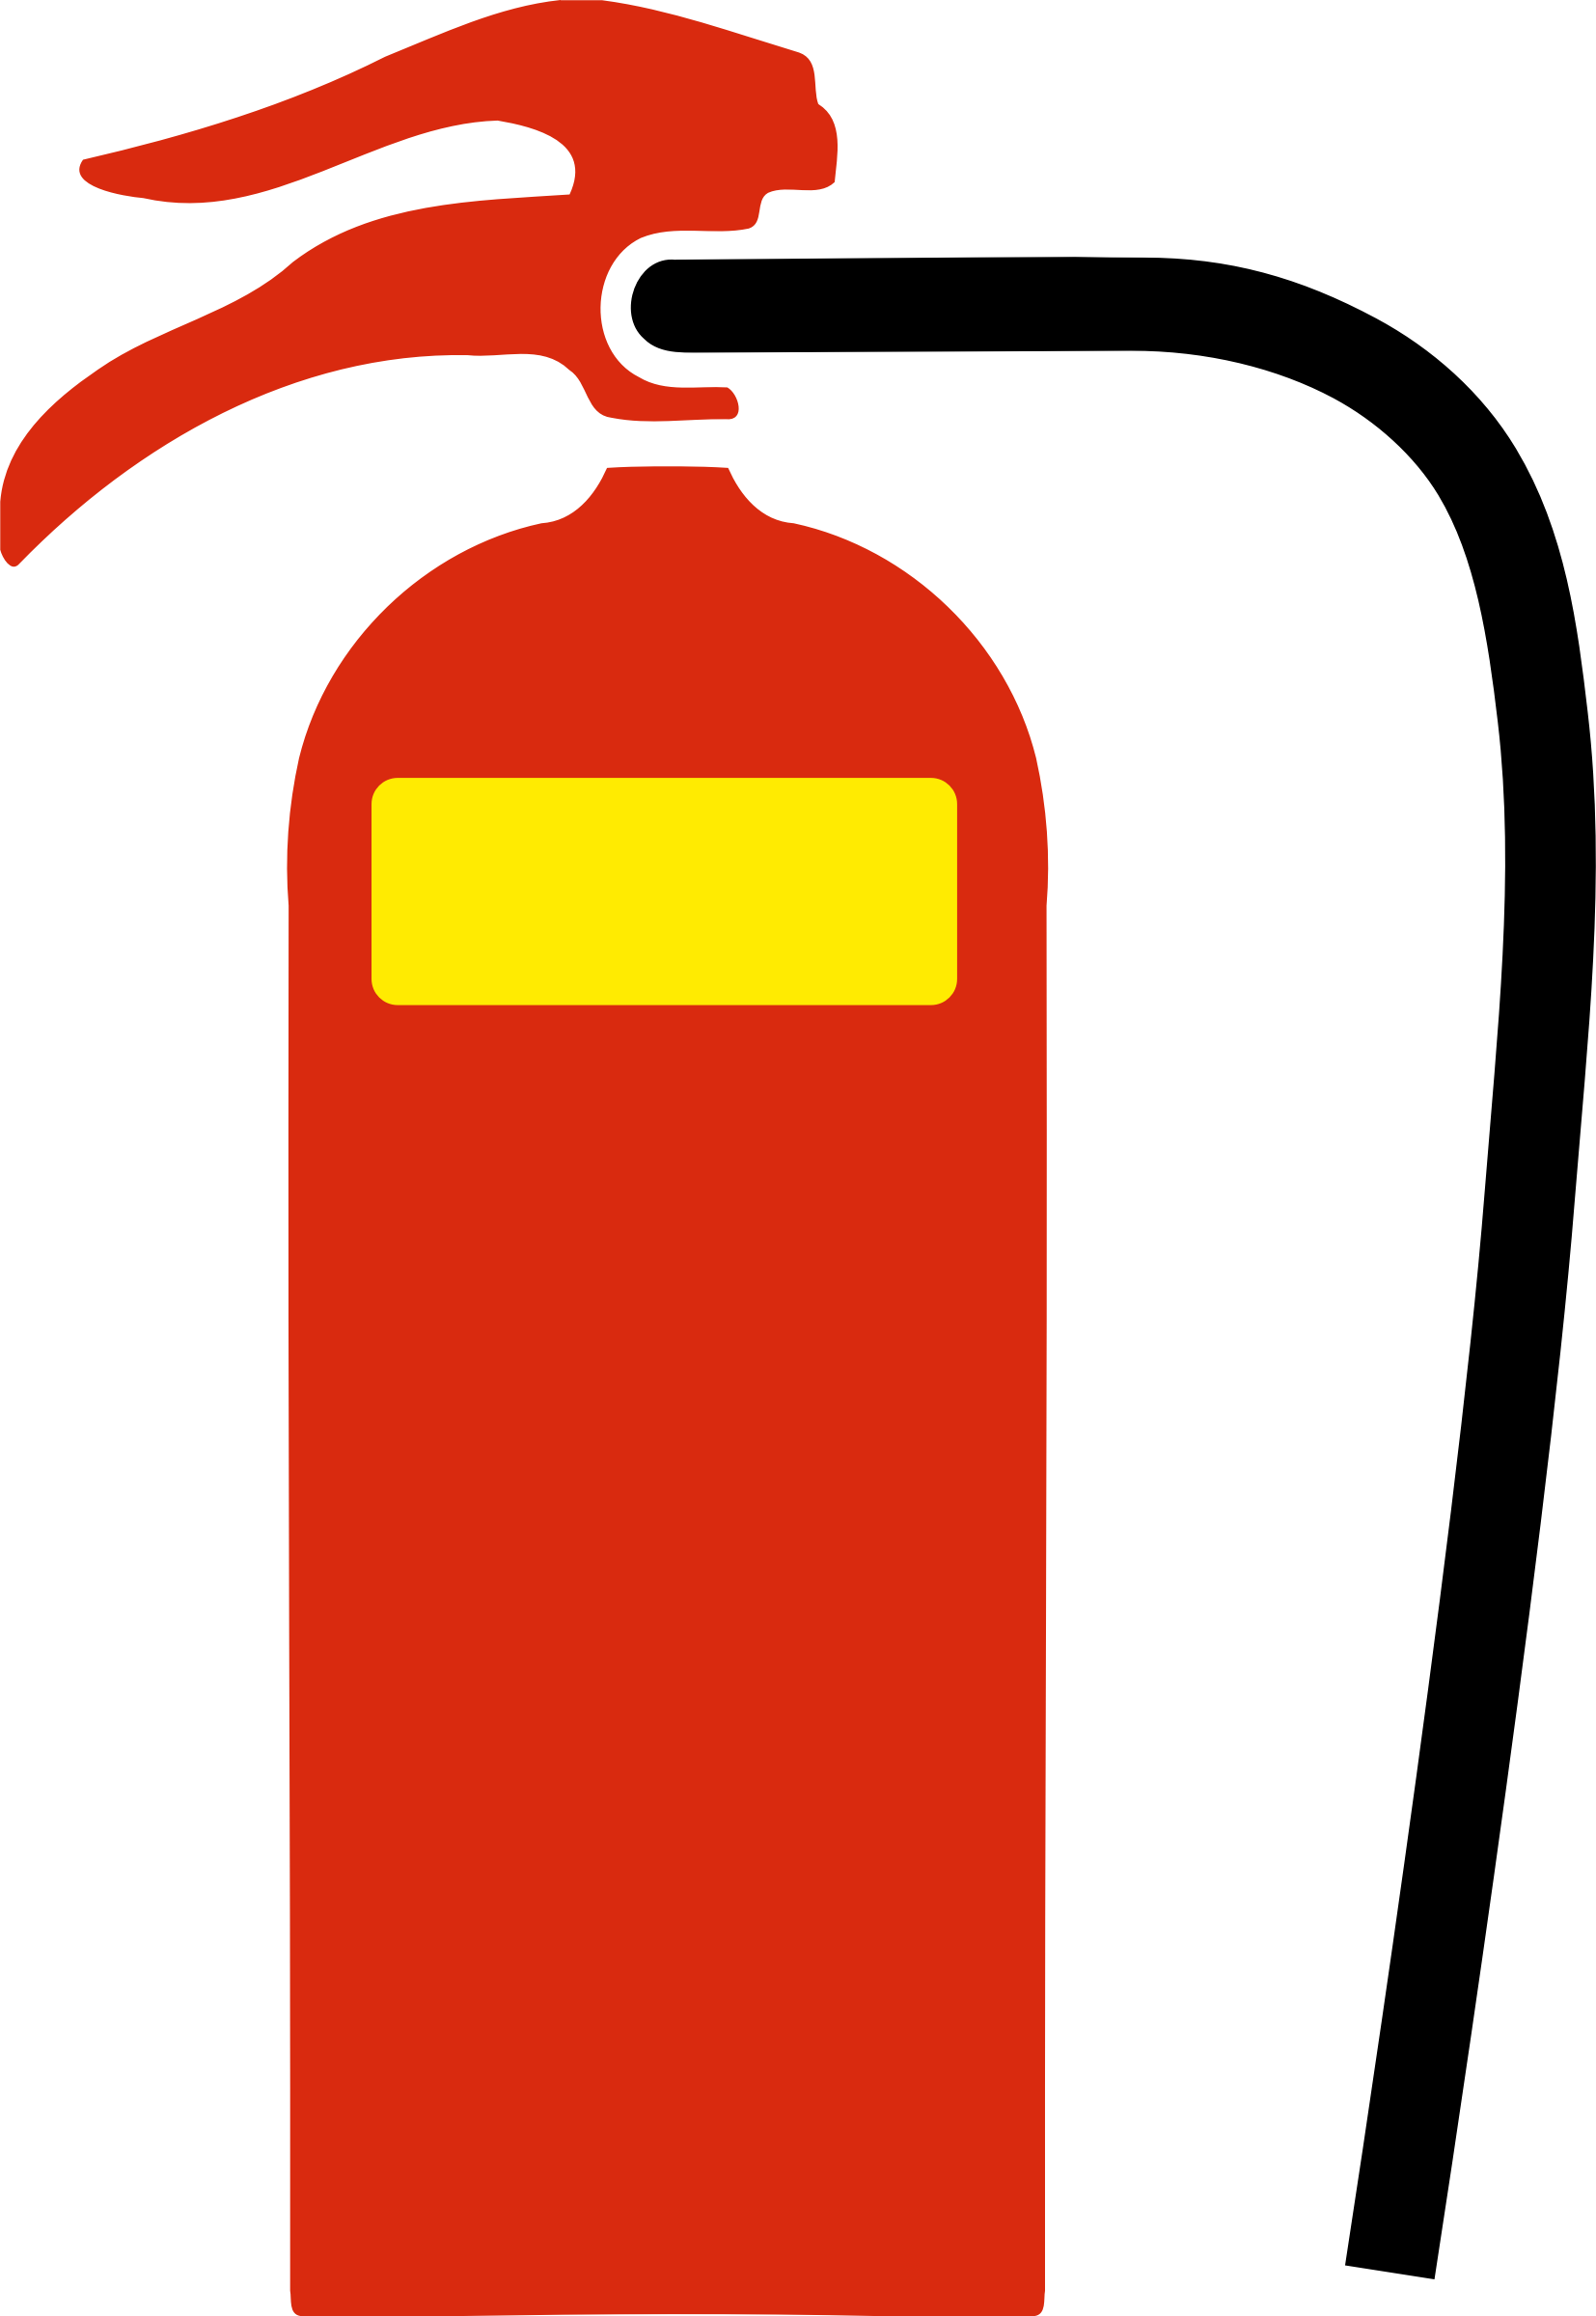 Fire extinguisher - wet chemical by Firkin